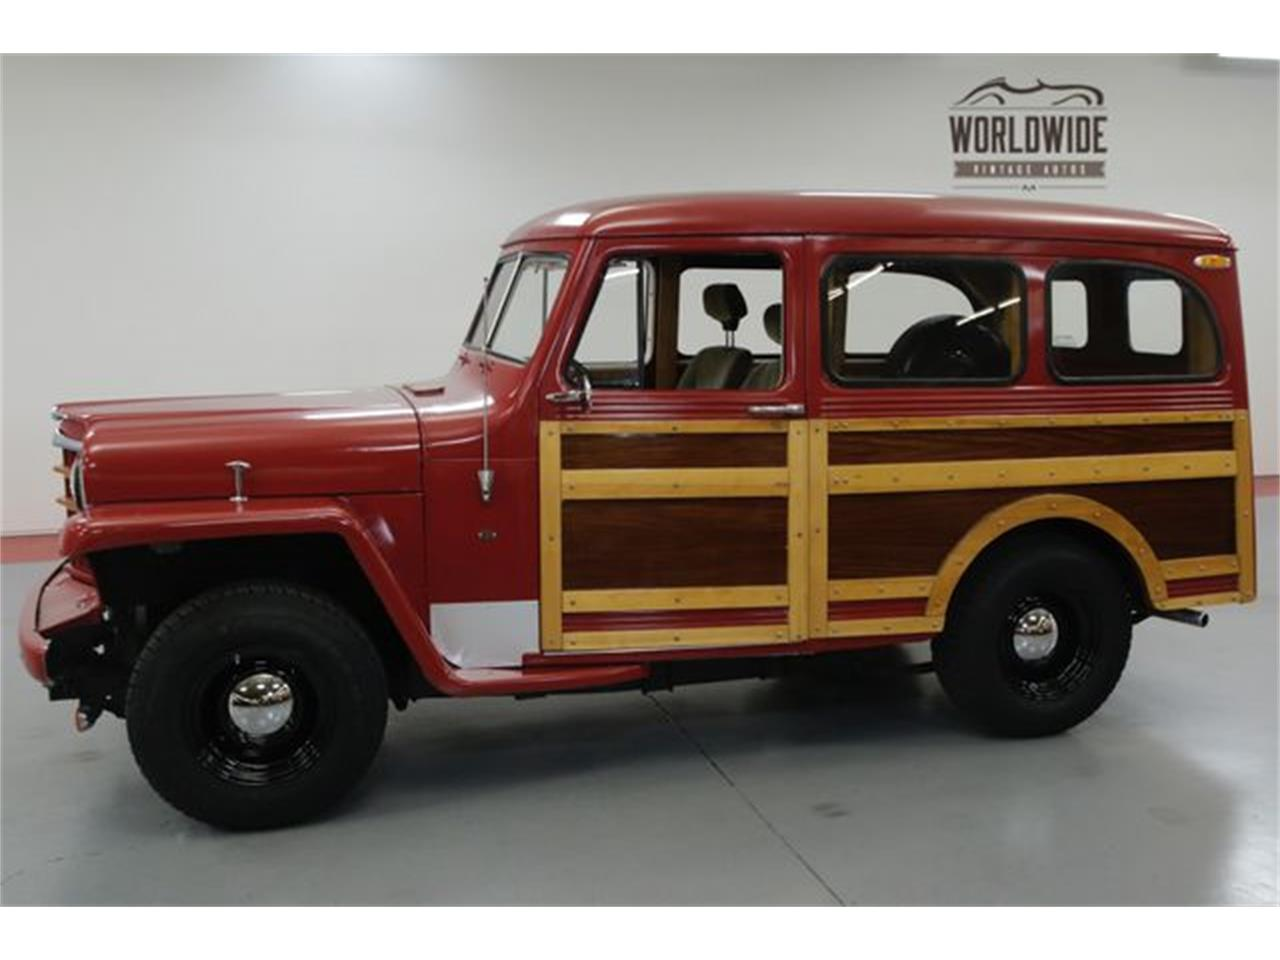 1950 Willys Wagoneer For Sale Cc 1152173 1950s Jeep Large Picture Of Classic Located In Denver Colorado Offered By Worldwide Vintage Autos